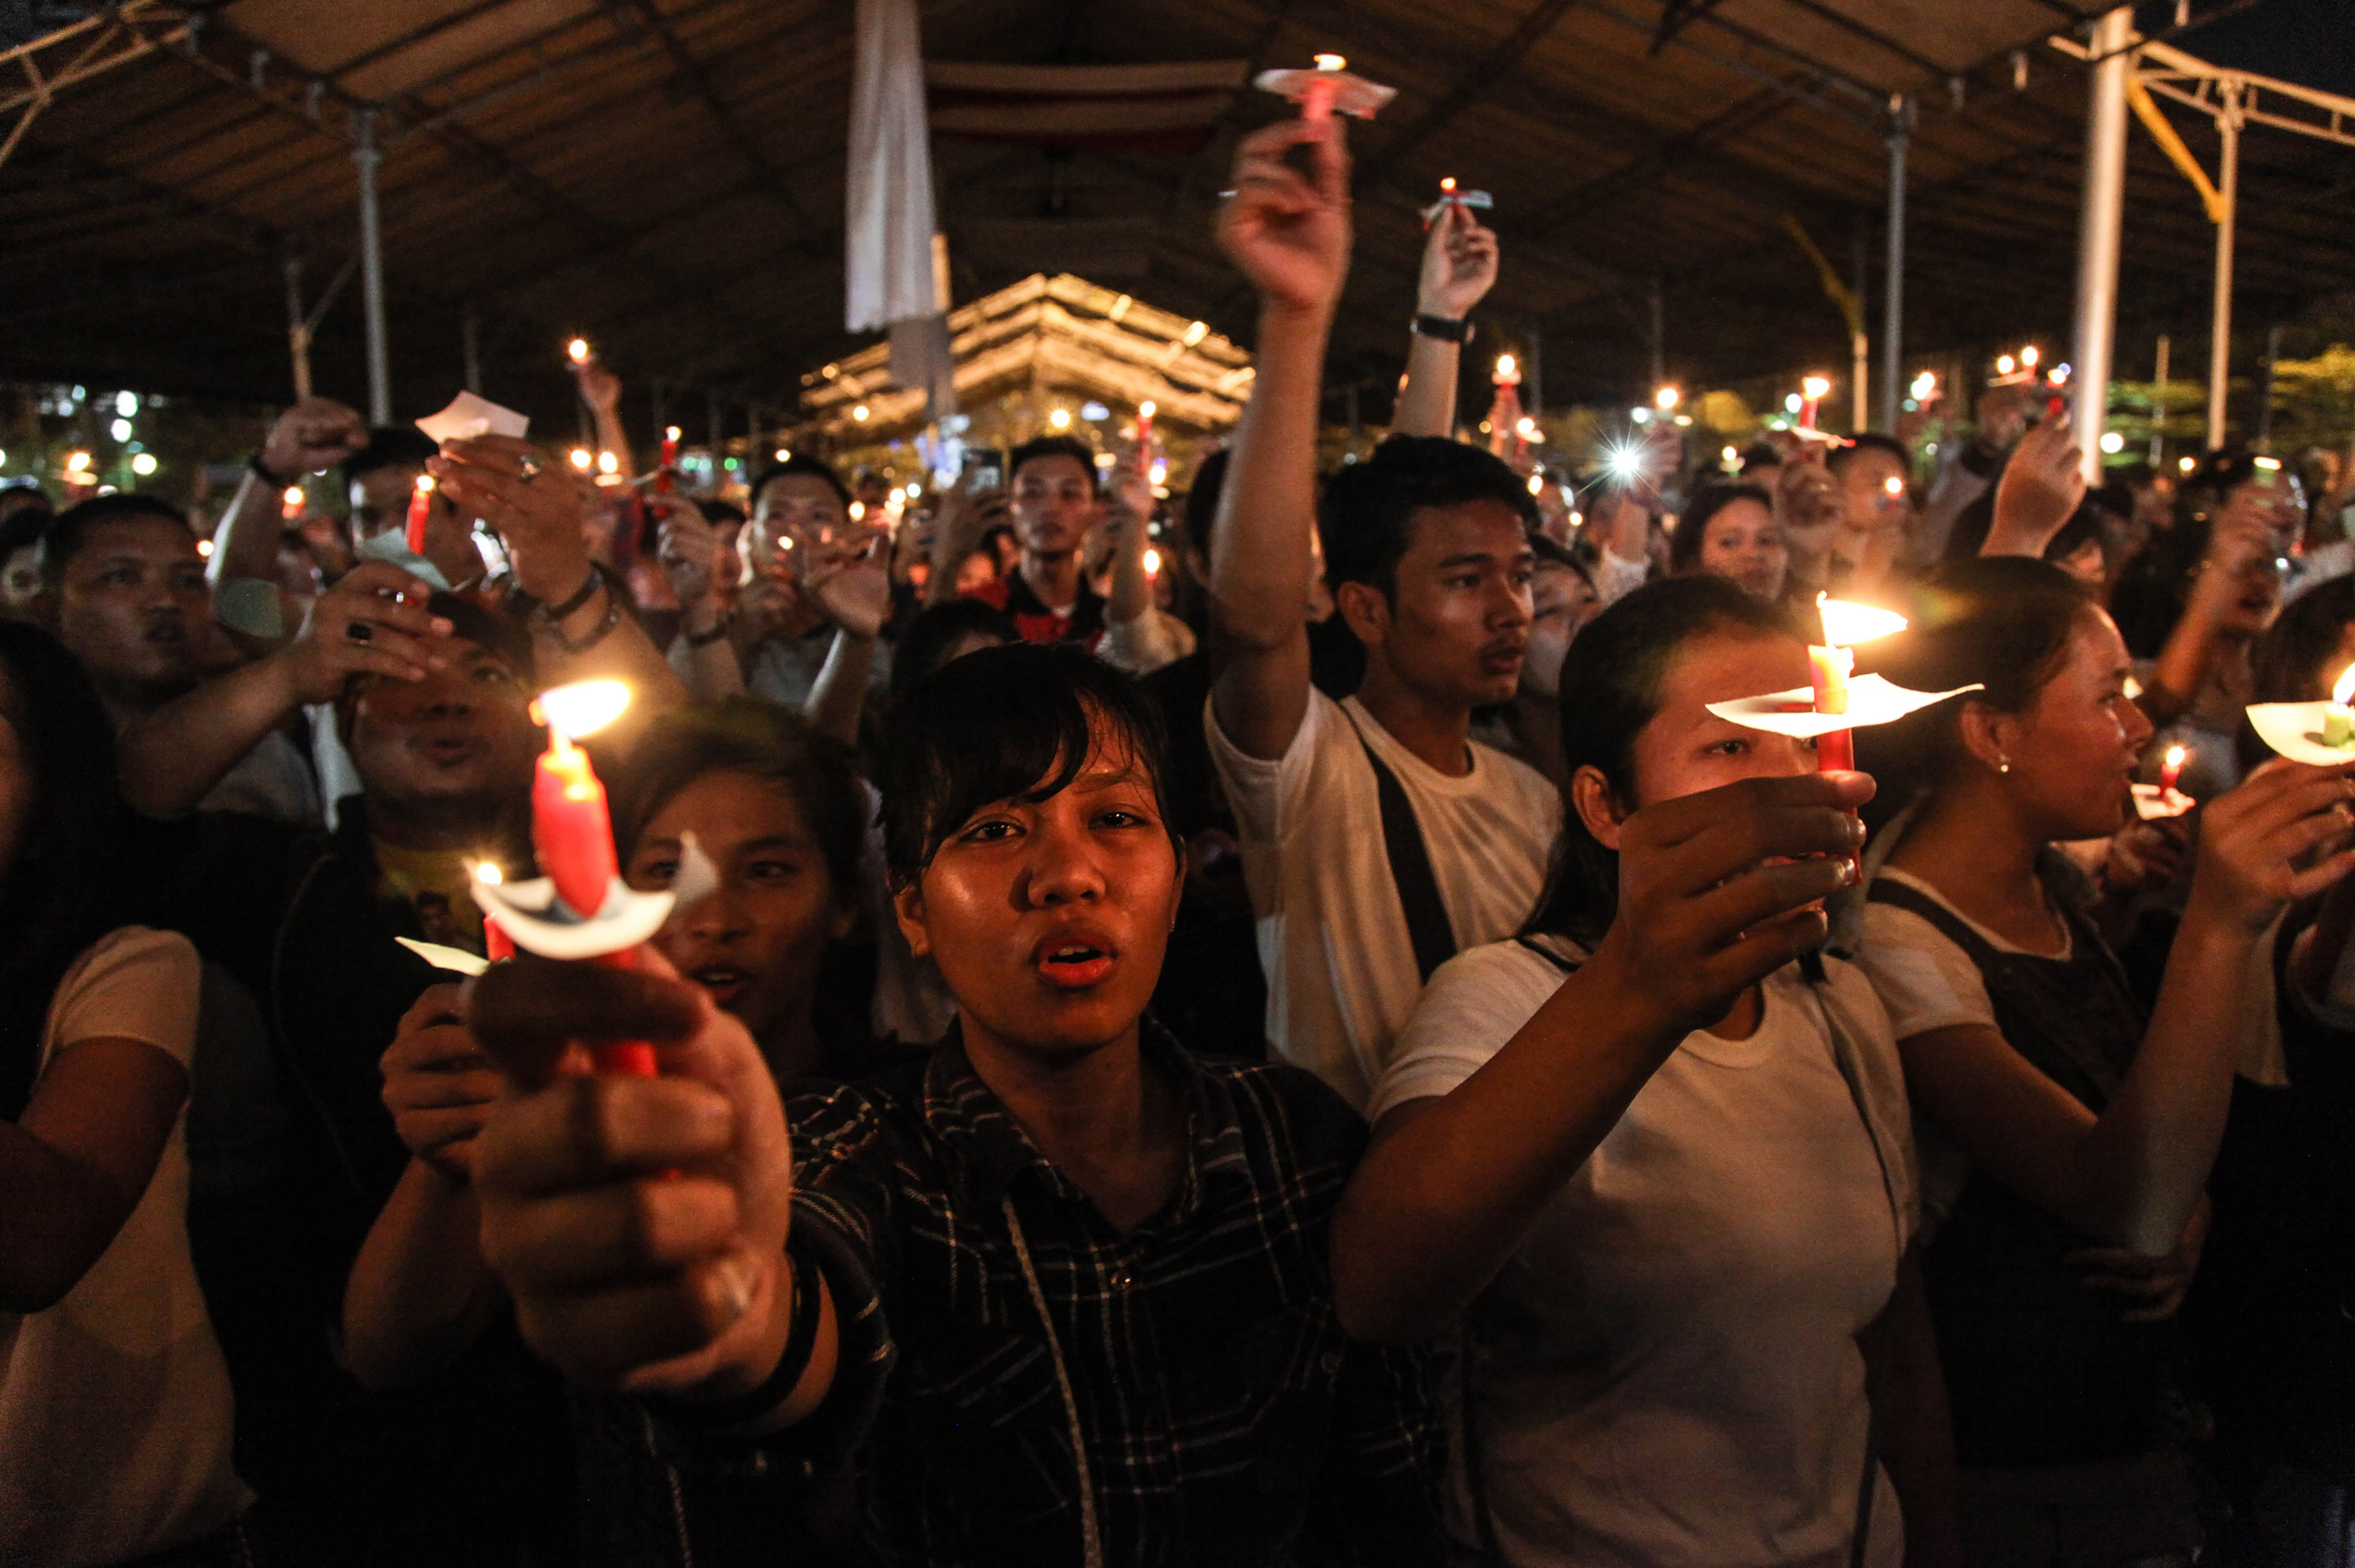 This picture taken on May 13, 2018 shows a candlelight vigil in the city of Medan on Indonesia's Sumatra island to support the victims and their relatives of a series attacks at churches in Surabaya, East Java.